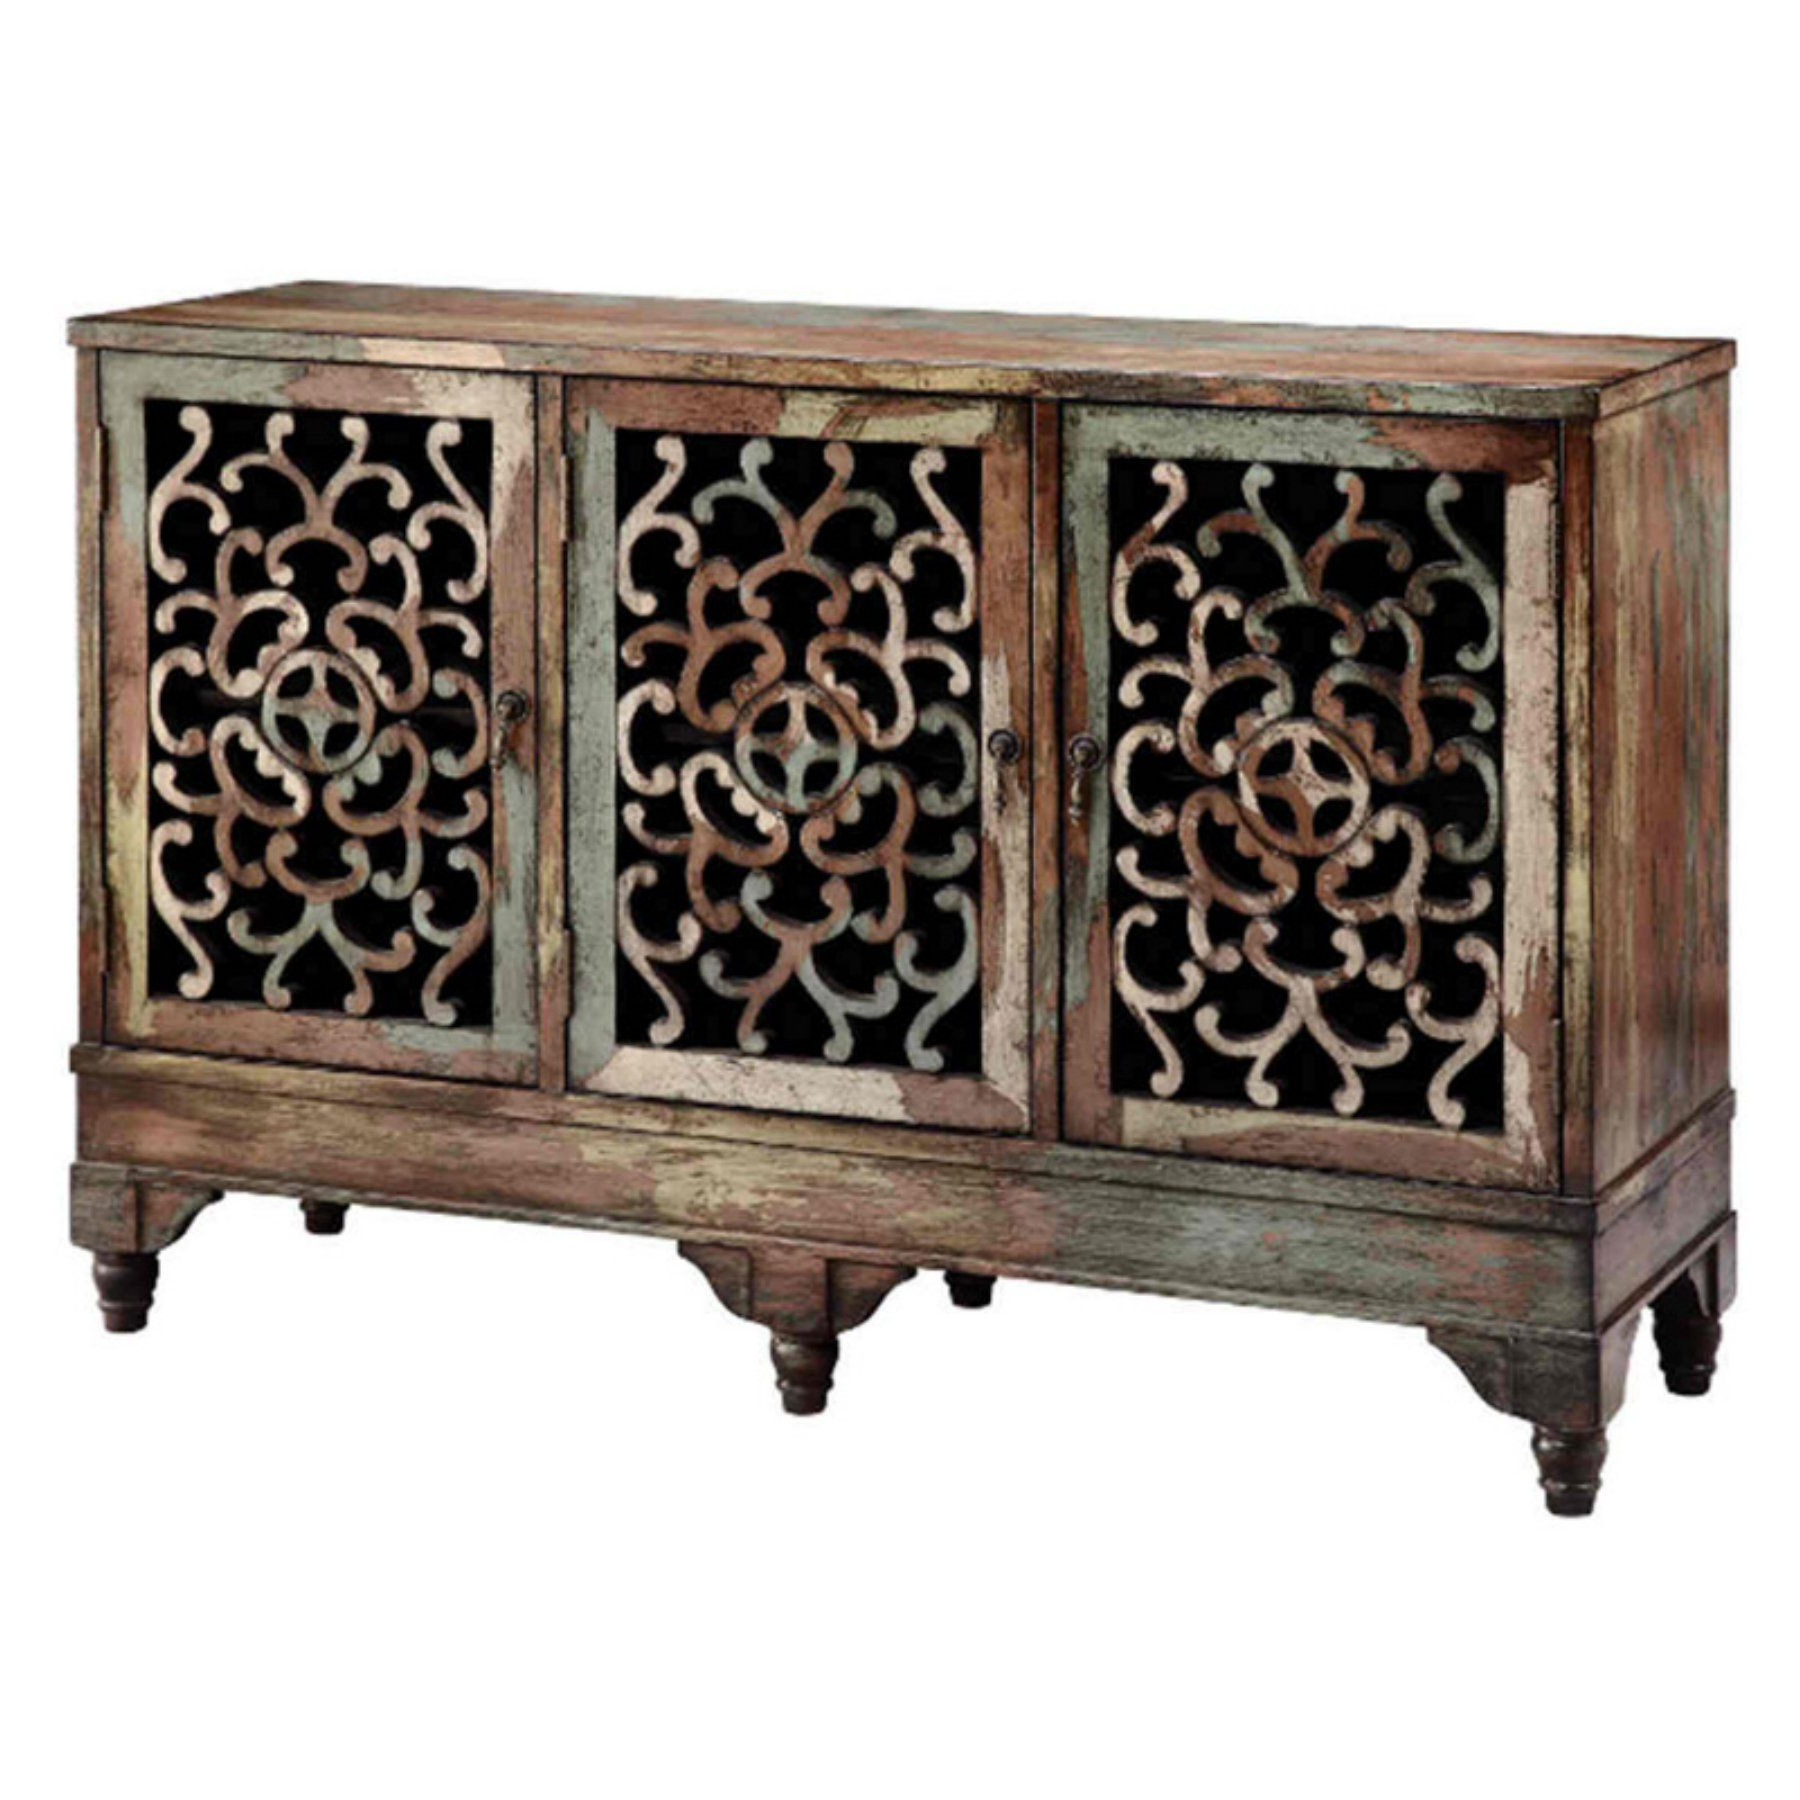 Ruskin Sideboards Throughout Fashionable Stein World Ruskin Cabinet Three Door Accent Cabinet (View 16 of 20)